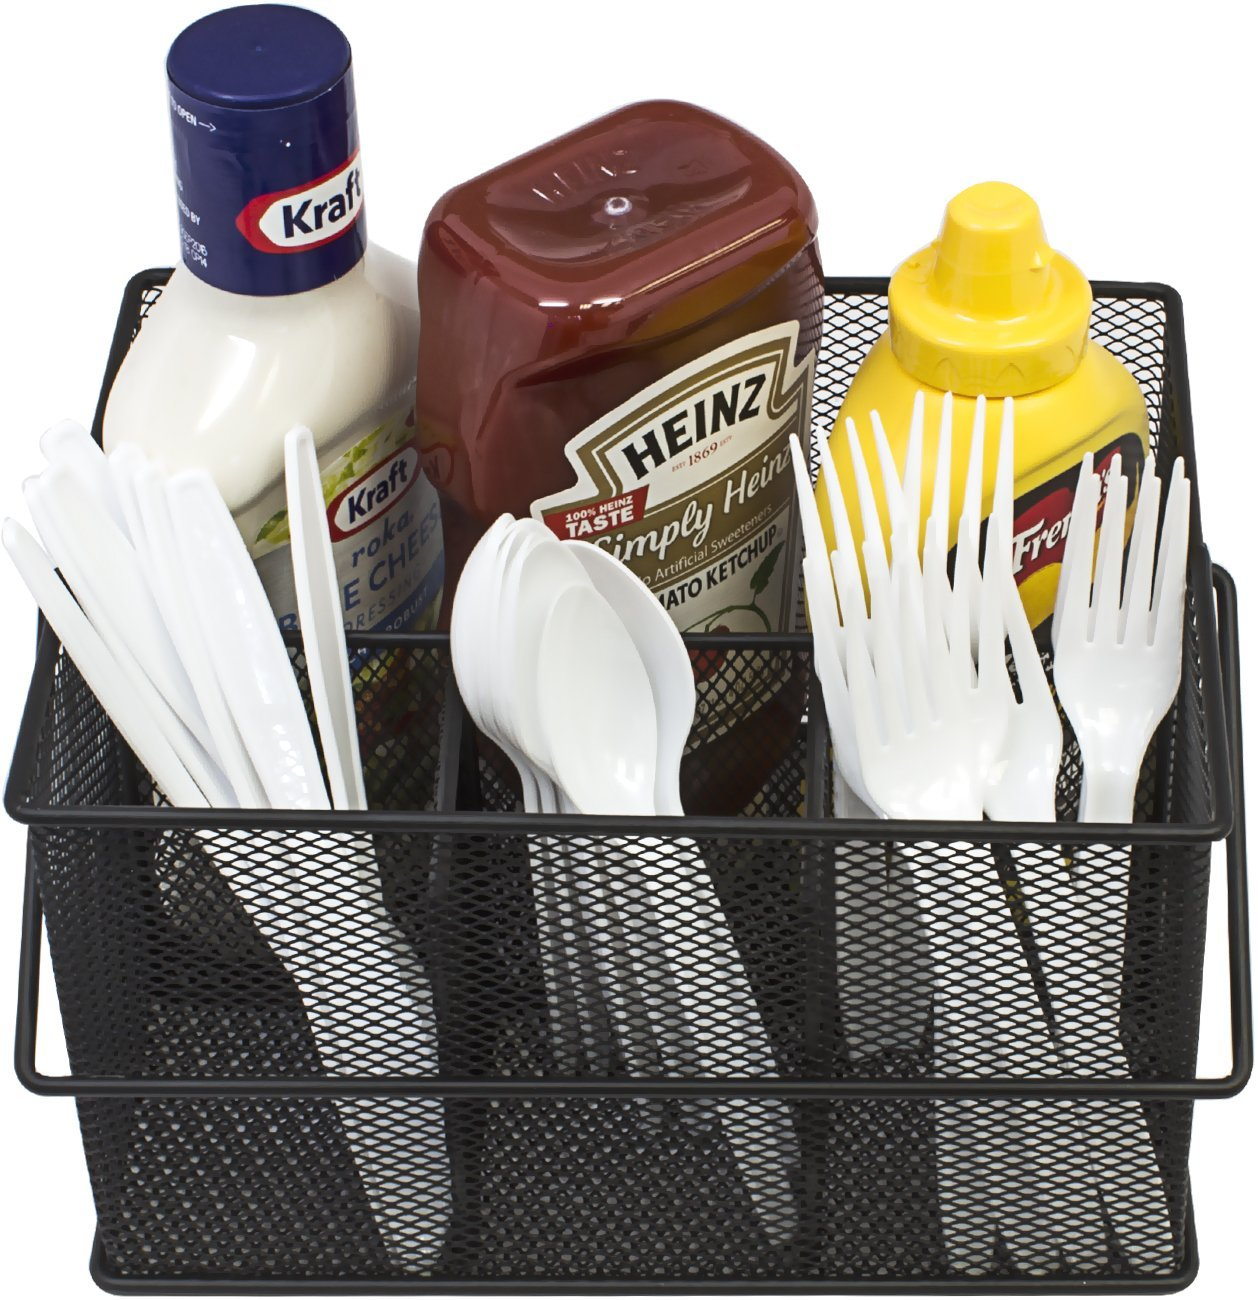 Utensil Caddy Silverware Napkin Holder And Condiment Organizer Multi Purpose Steel Mesh Caddy Ideal For Kitchen Dining Entertaining By Sorbus Walmart Com Walmart Com